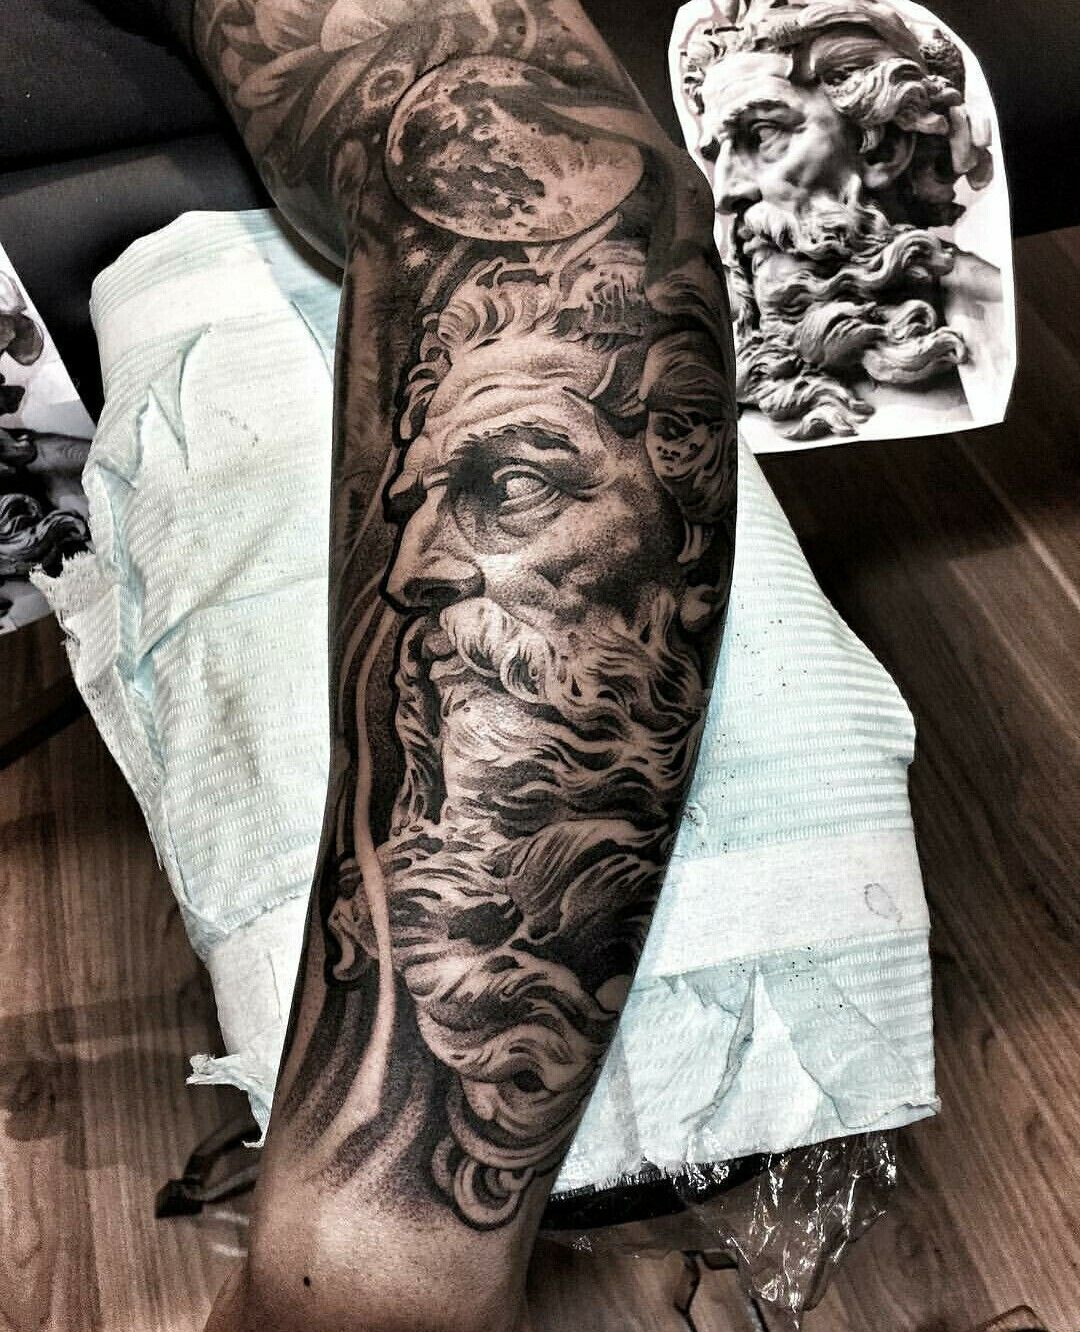 a tattoo of one of the Greek gods